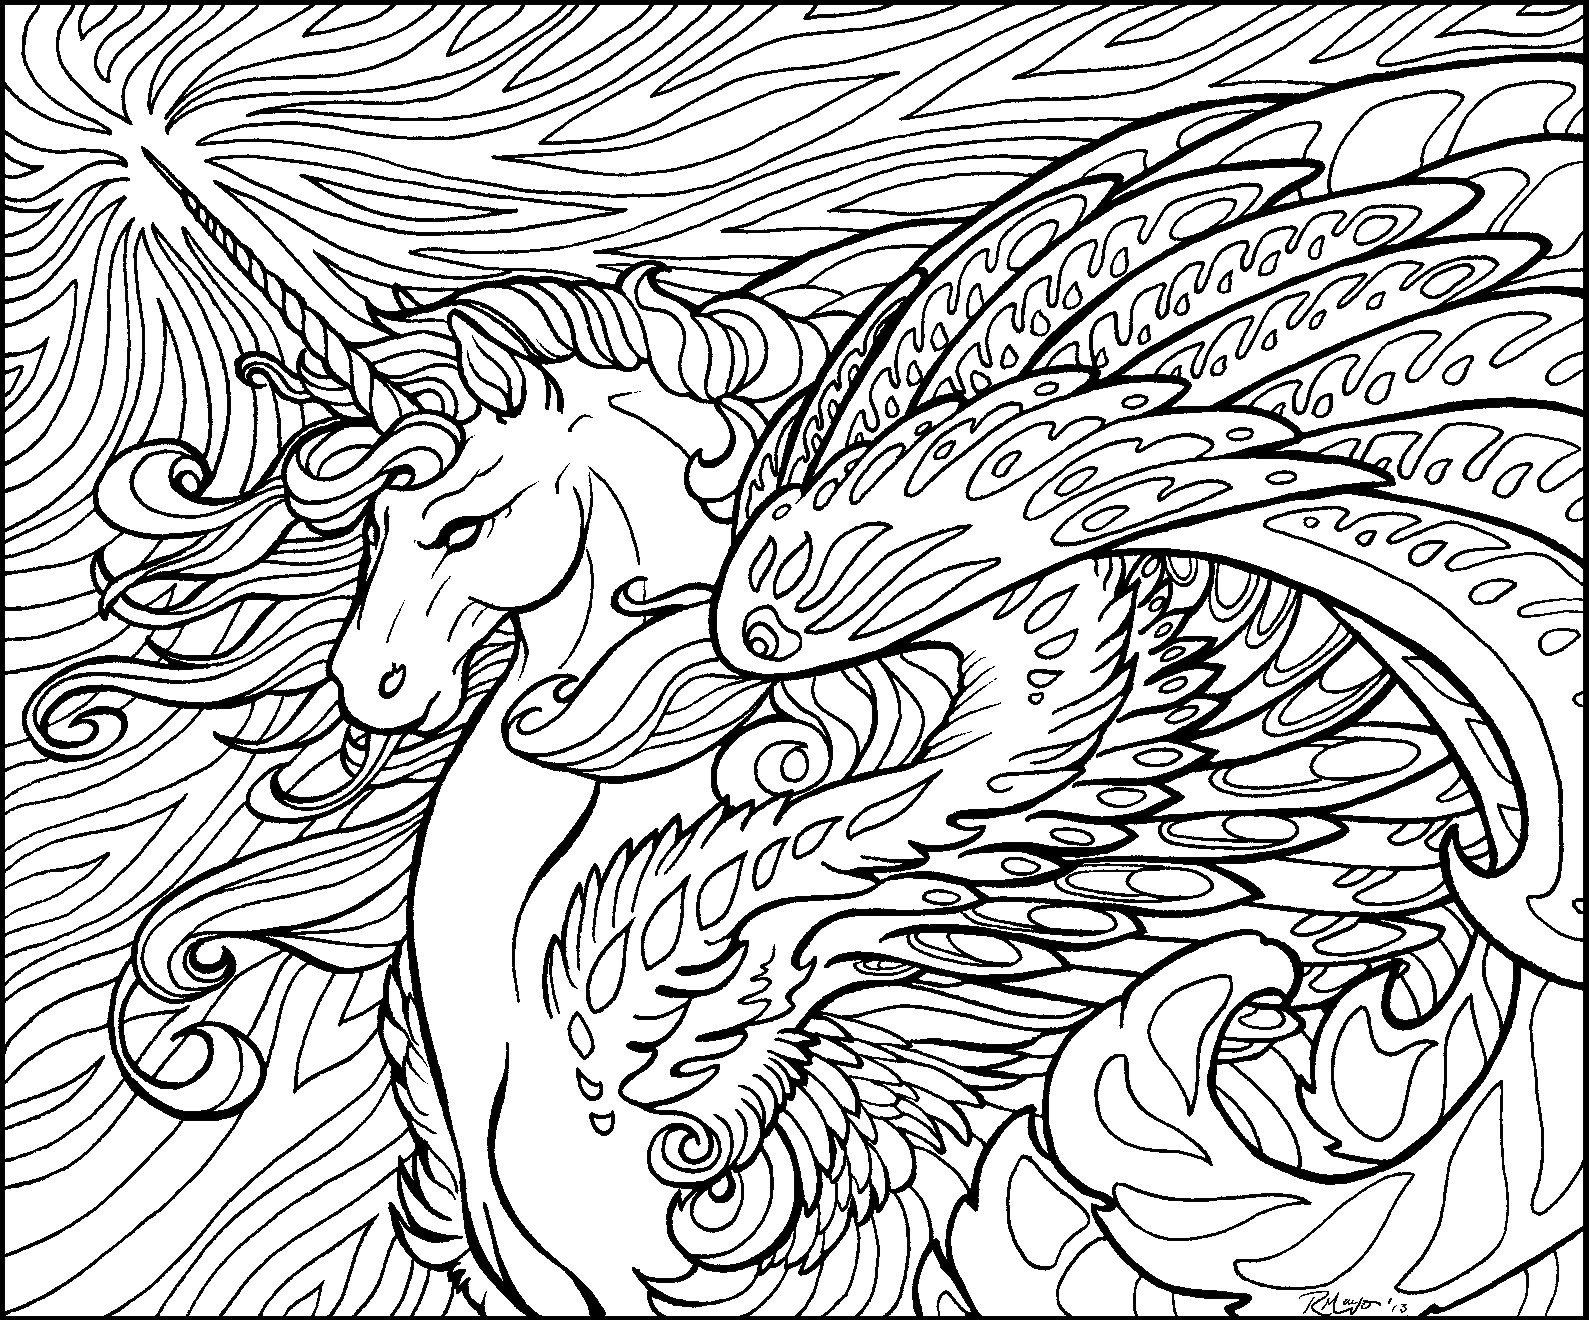 Chinese Dragon Coloring Pages Beautiful Realistic Dragon Coloring Pages At Getdrawings Dragon Coloring Page Horse Coloring Pages Detailed Coloring Pages